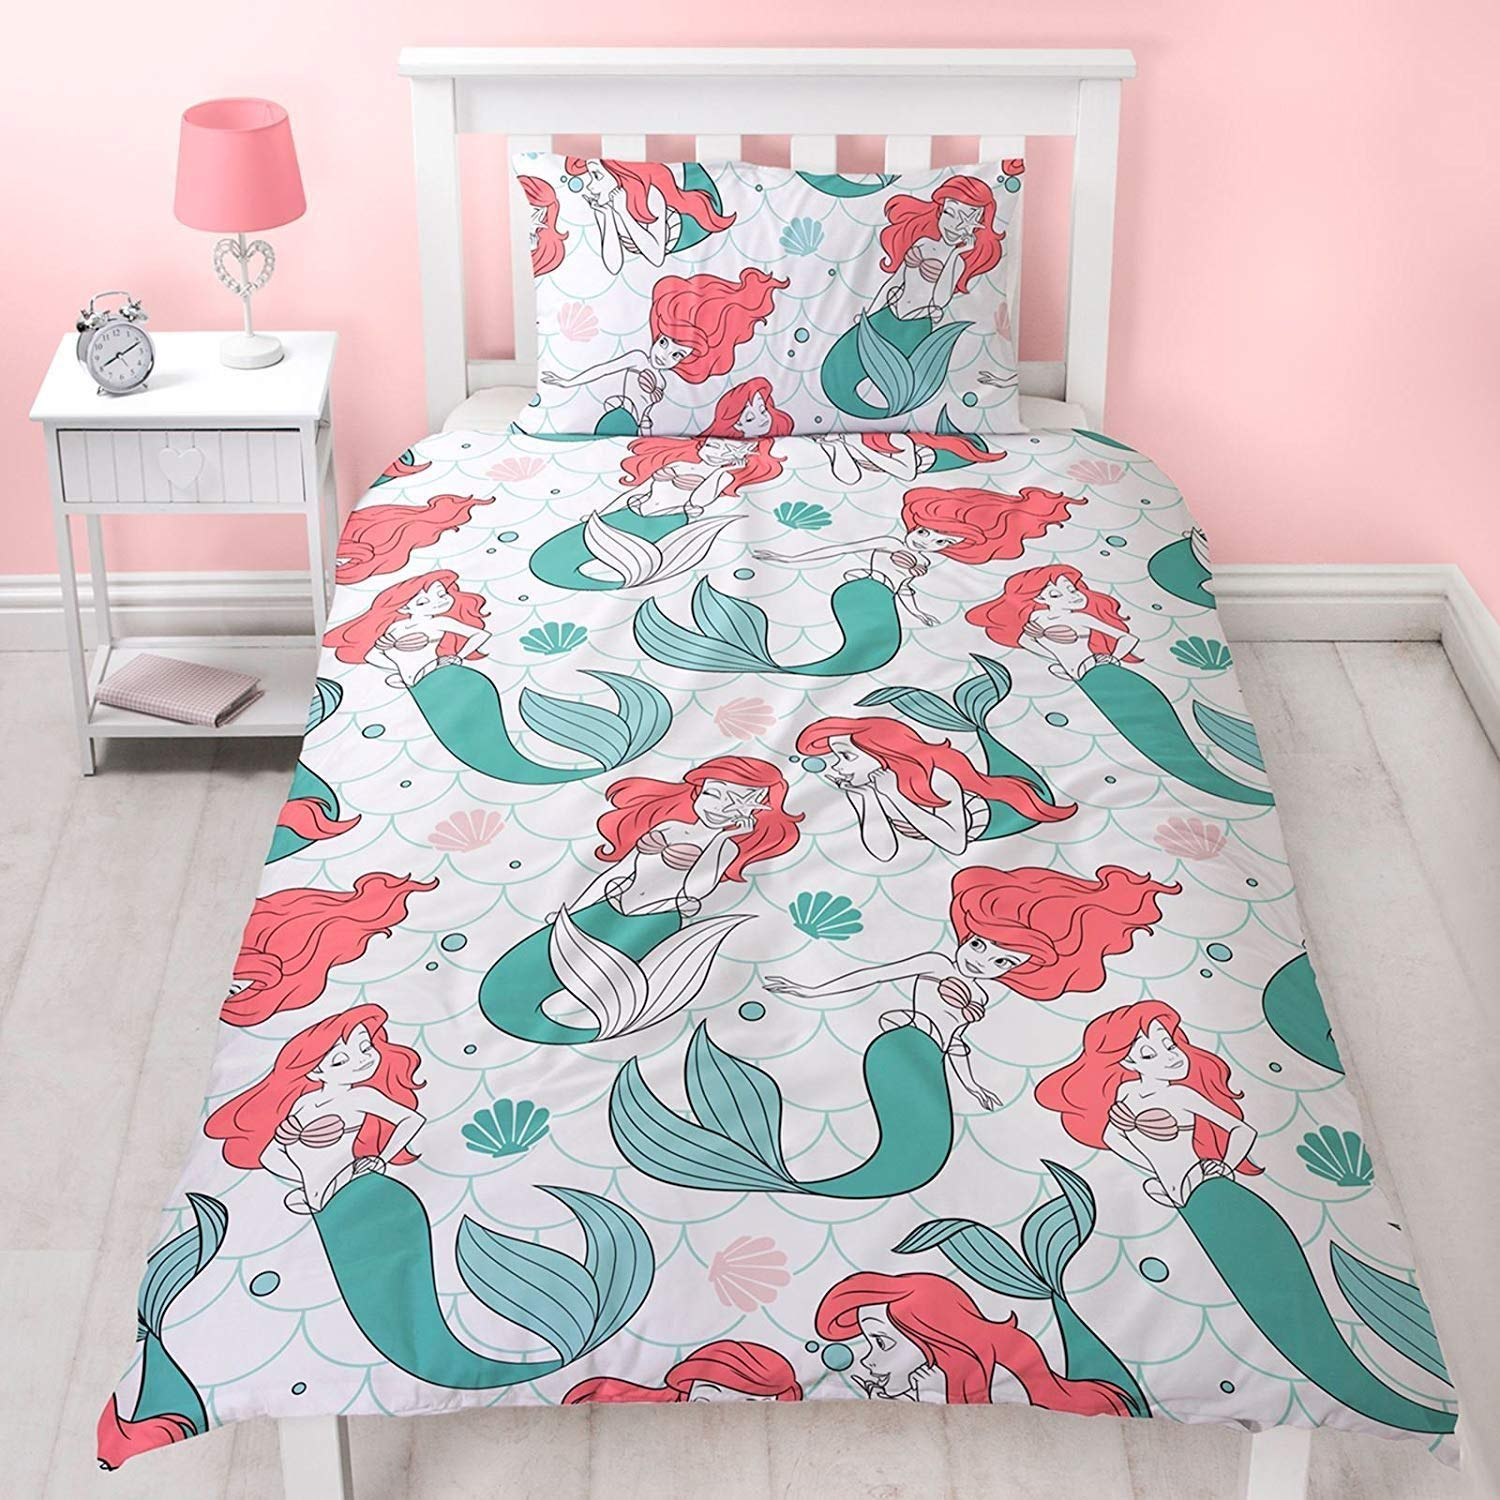 The Little Mermaid Single Duvet Cover